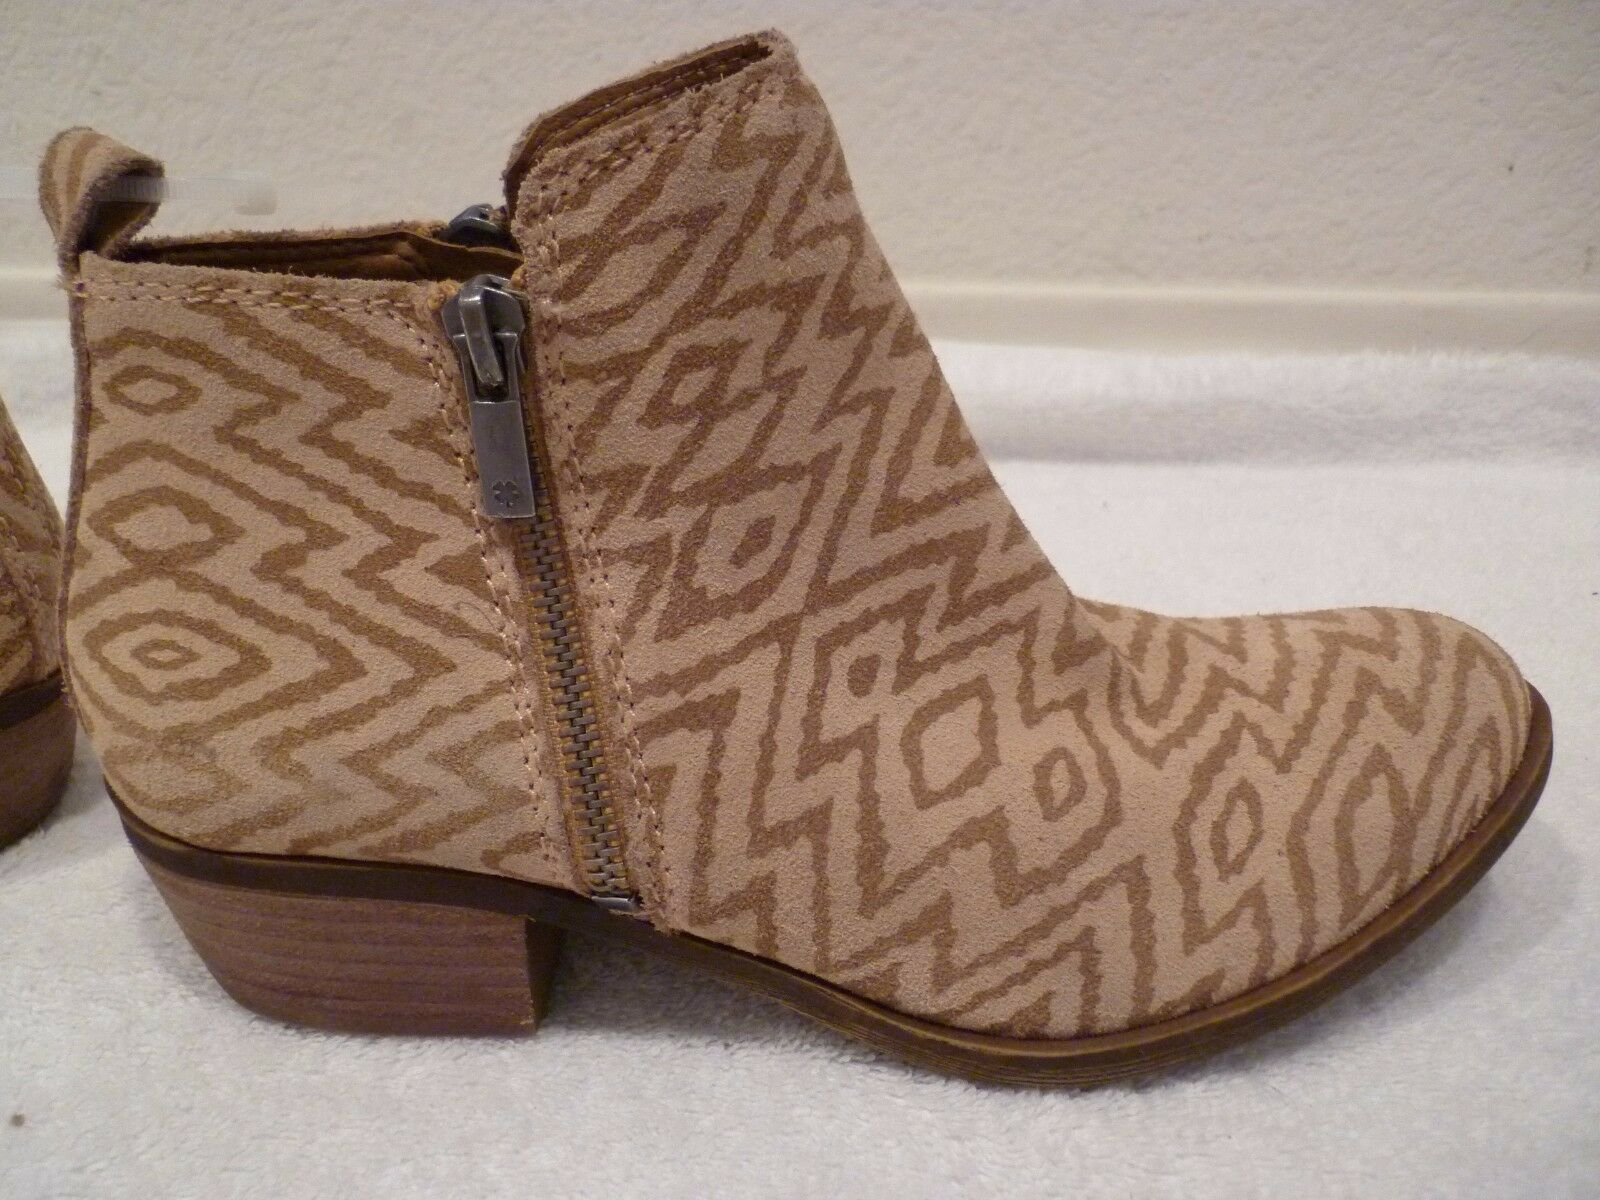 LUCKY BRAND BASEL zip up ankle Stiefel braun stripe  128 SZ 36.5 6.5-NEW